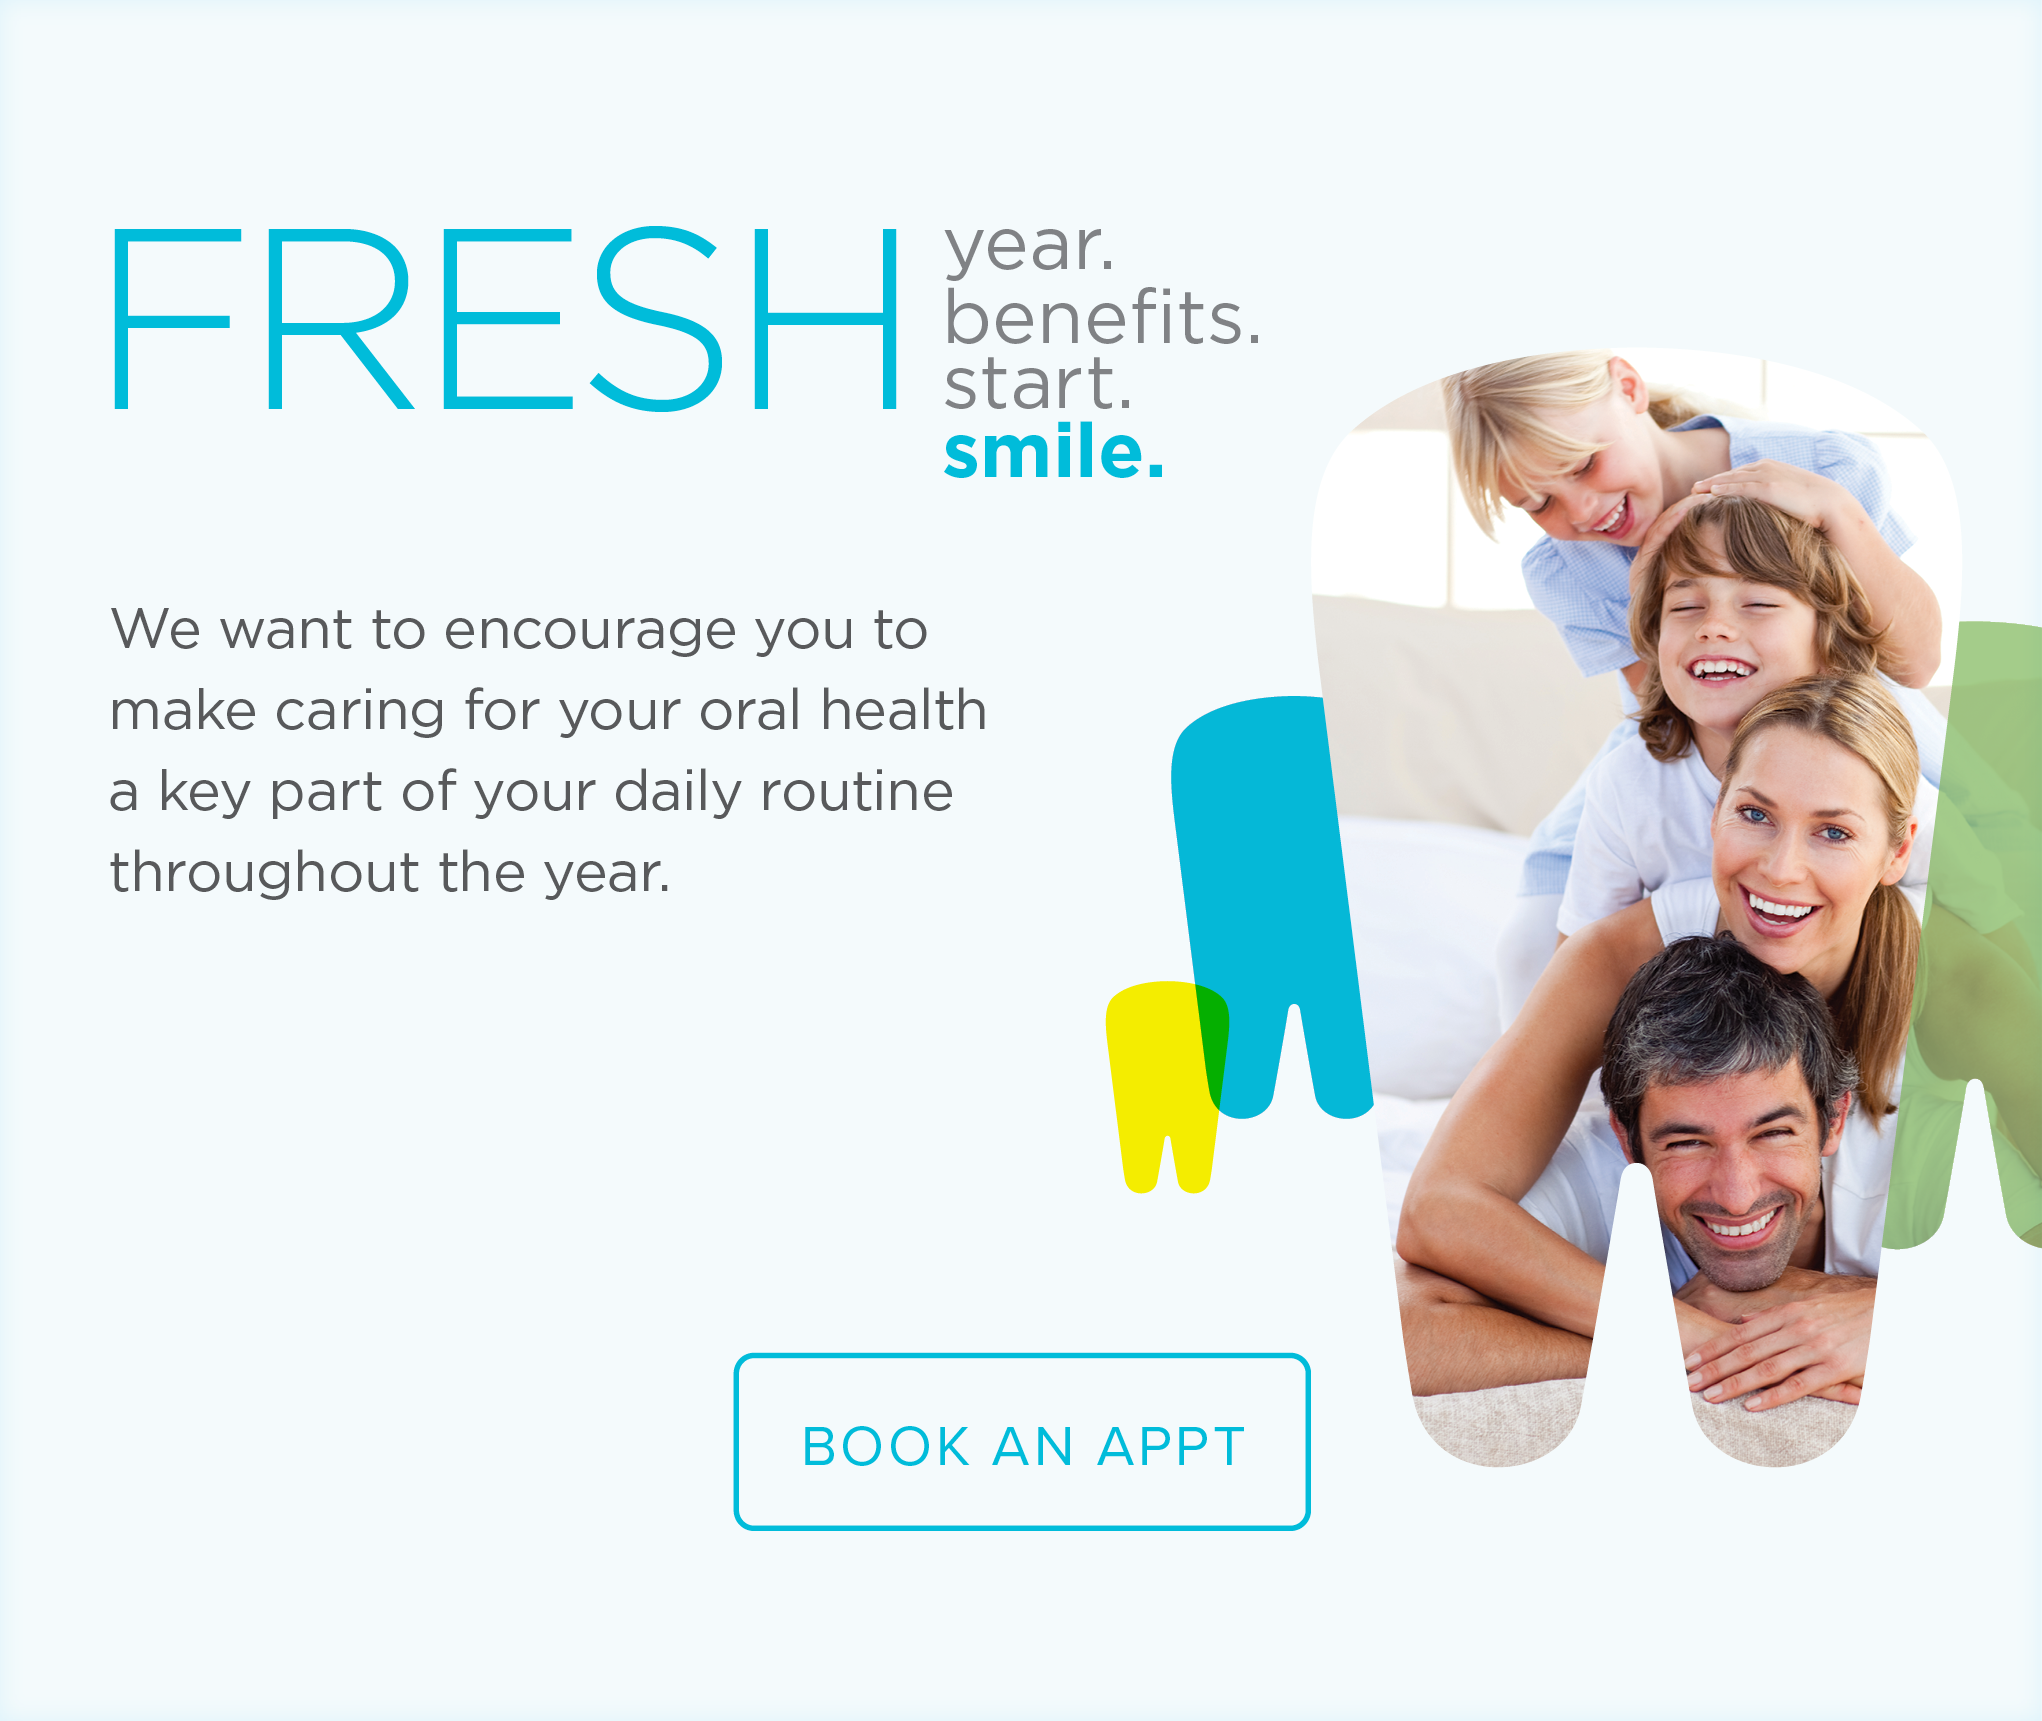 Norterra Dental Group and Orthodontics - Make the Most of Your Benefits